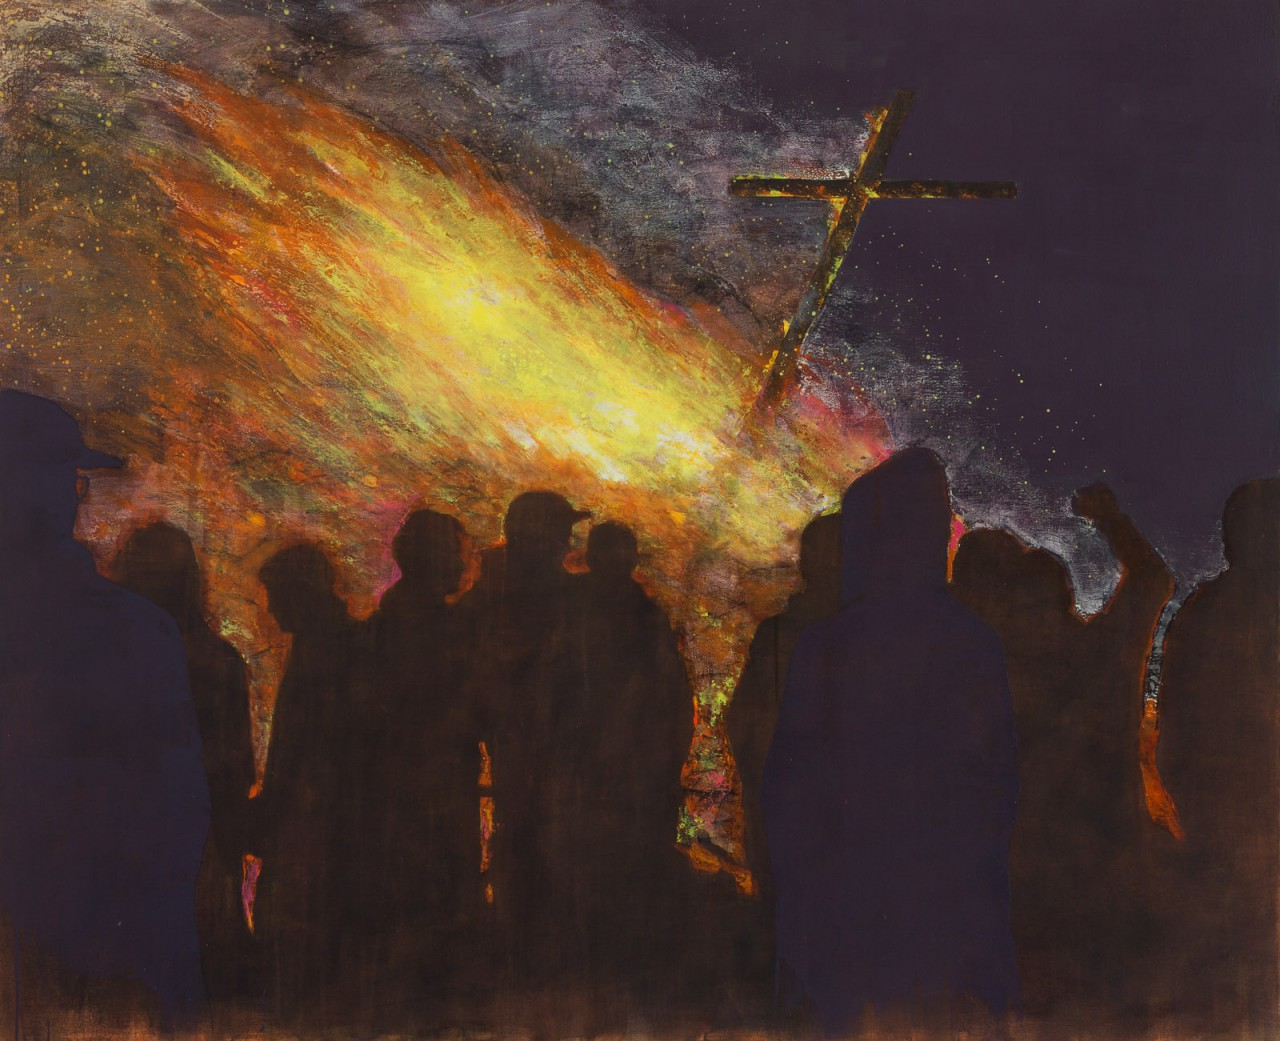 Kreuzfeuer, 155 x 190 cm, oil on canvas